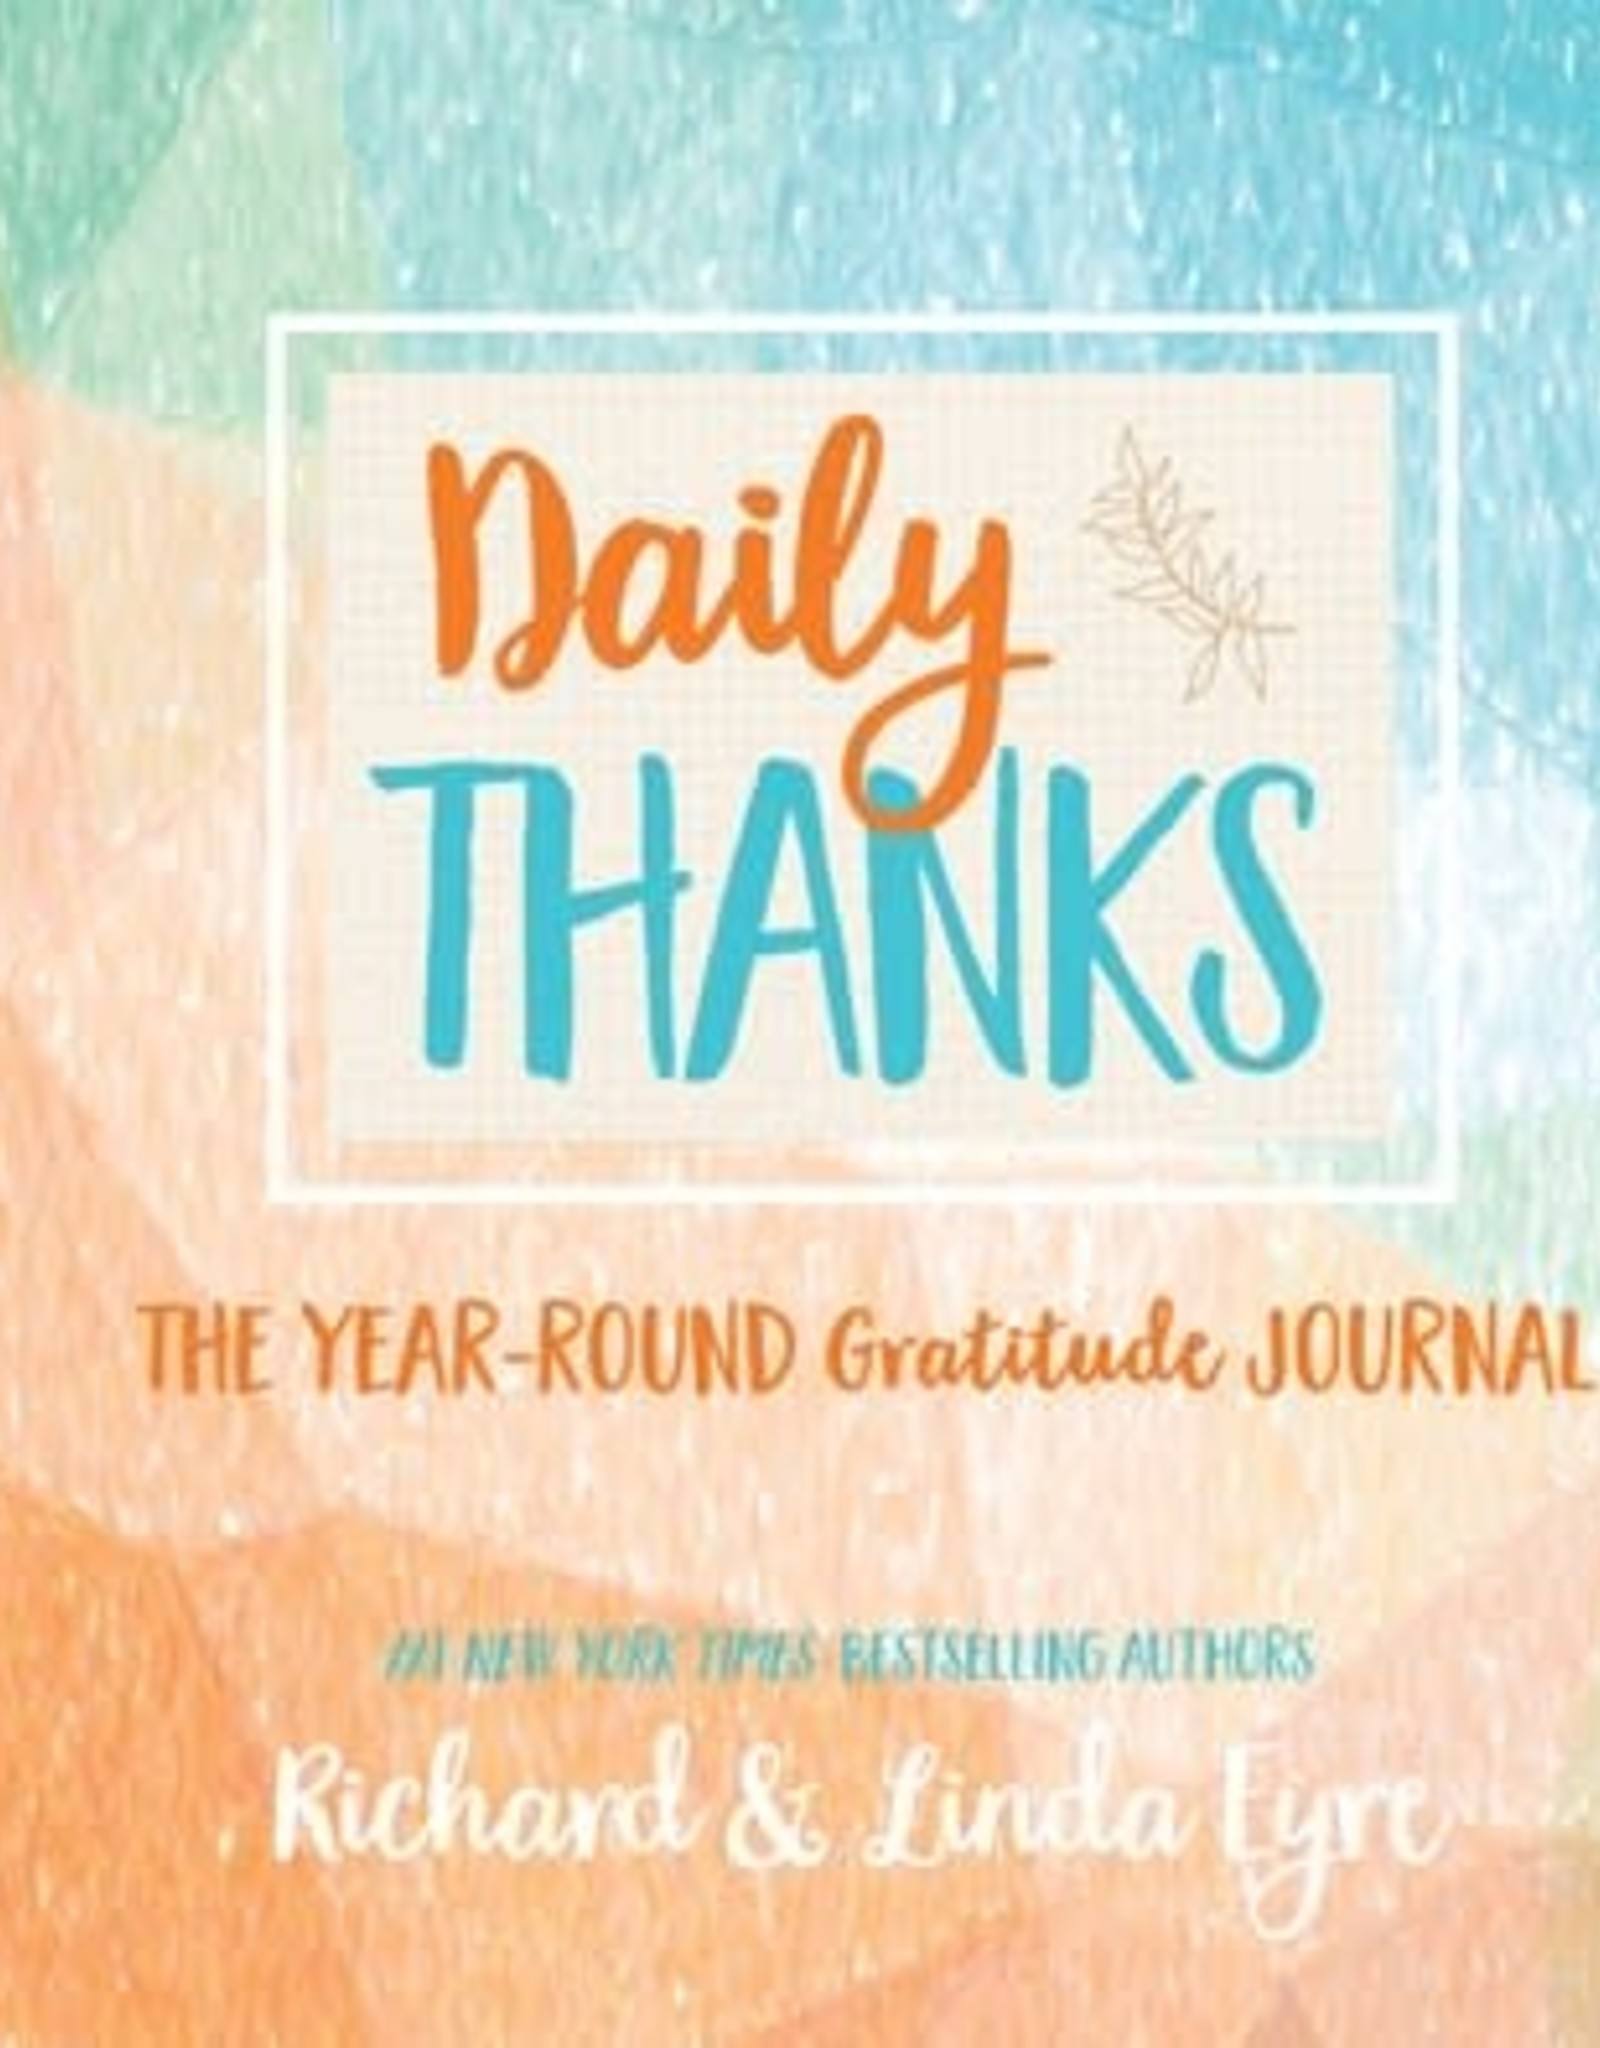 DAILY THANKS